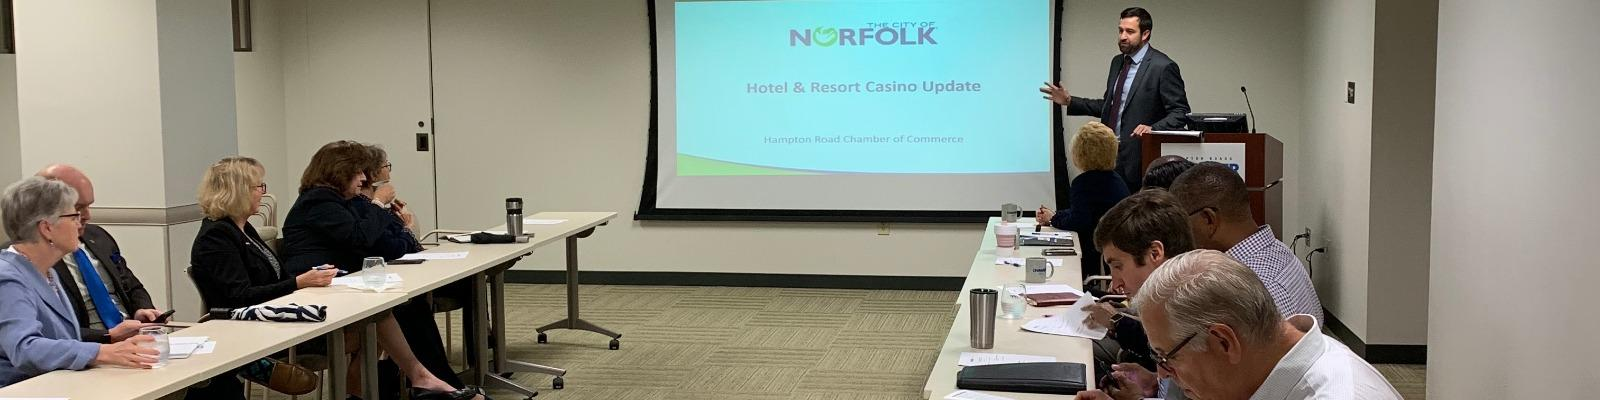 Jared Chalk, Interim Director of Economic Development for the City of Norfolk, providing a presentation on the Pamunkey Resort & Casino project. Cover